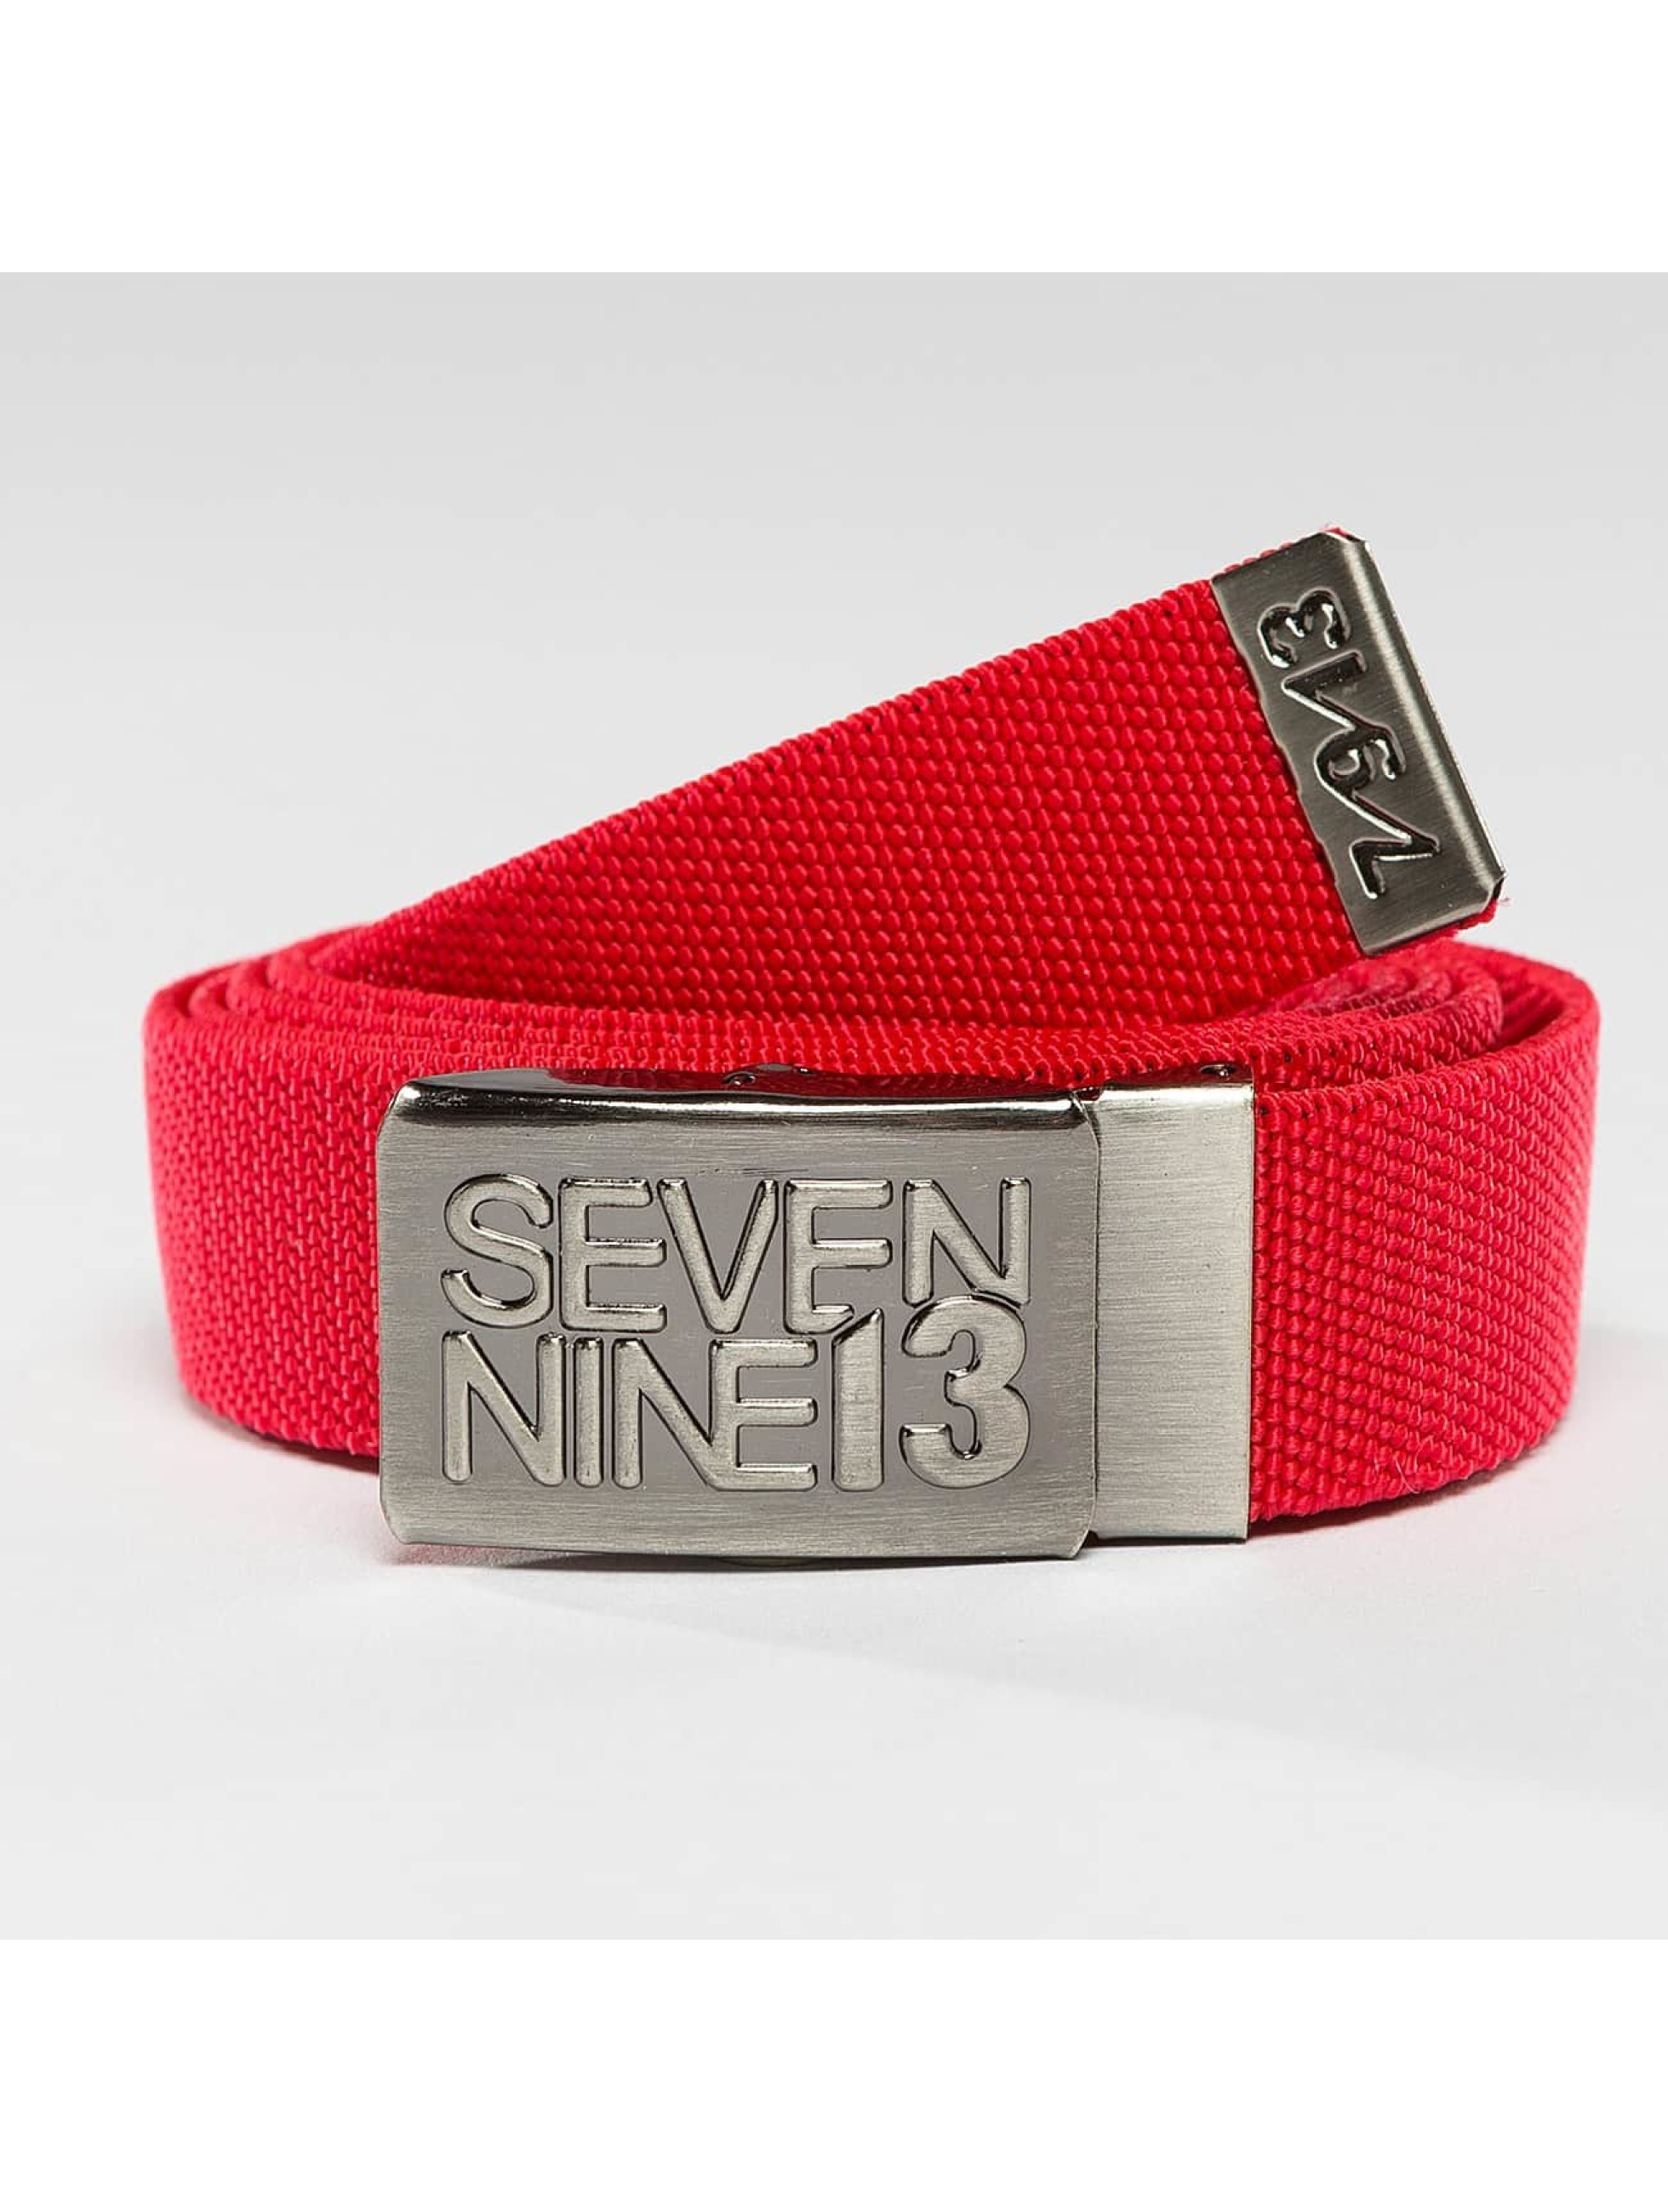 Seven Nine 13 Belt Jaws Stretch red